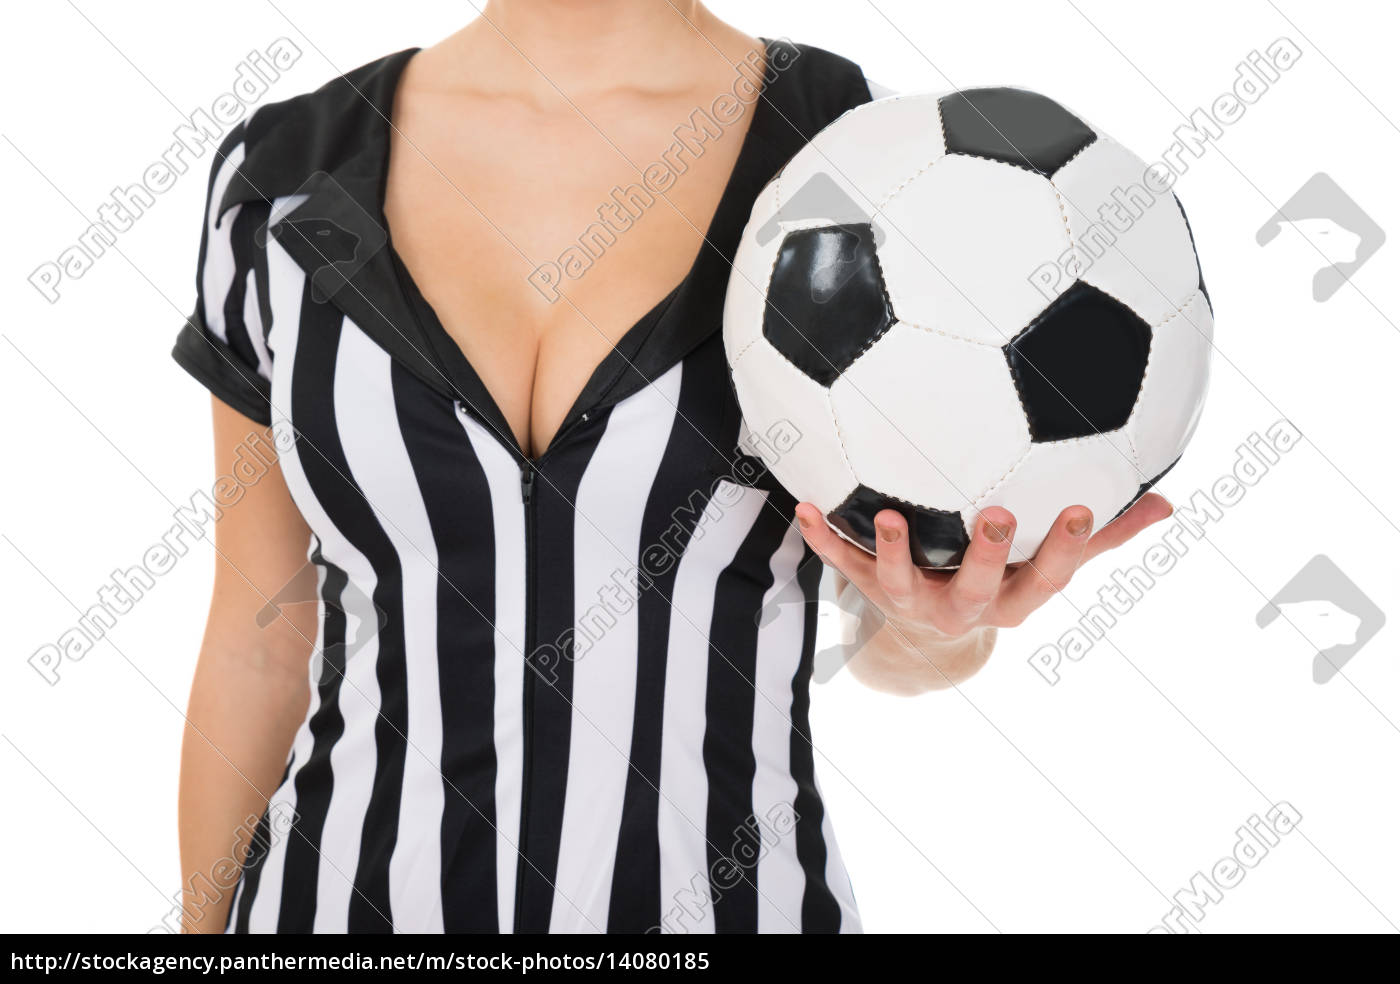 female, referee, holding, football - 14080185